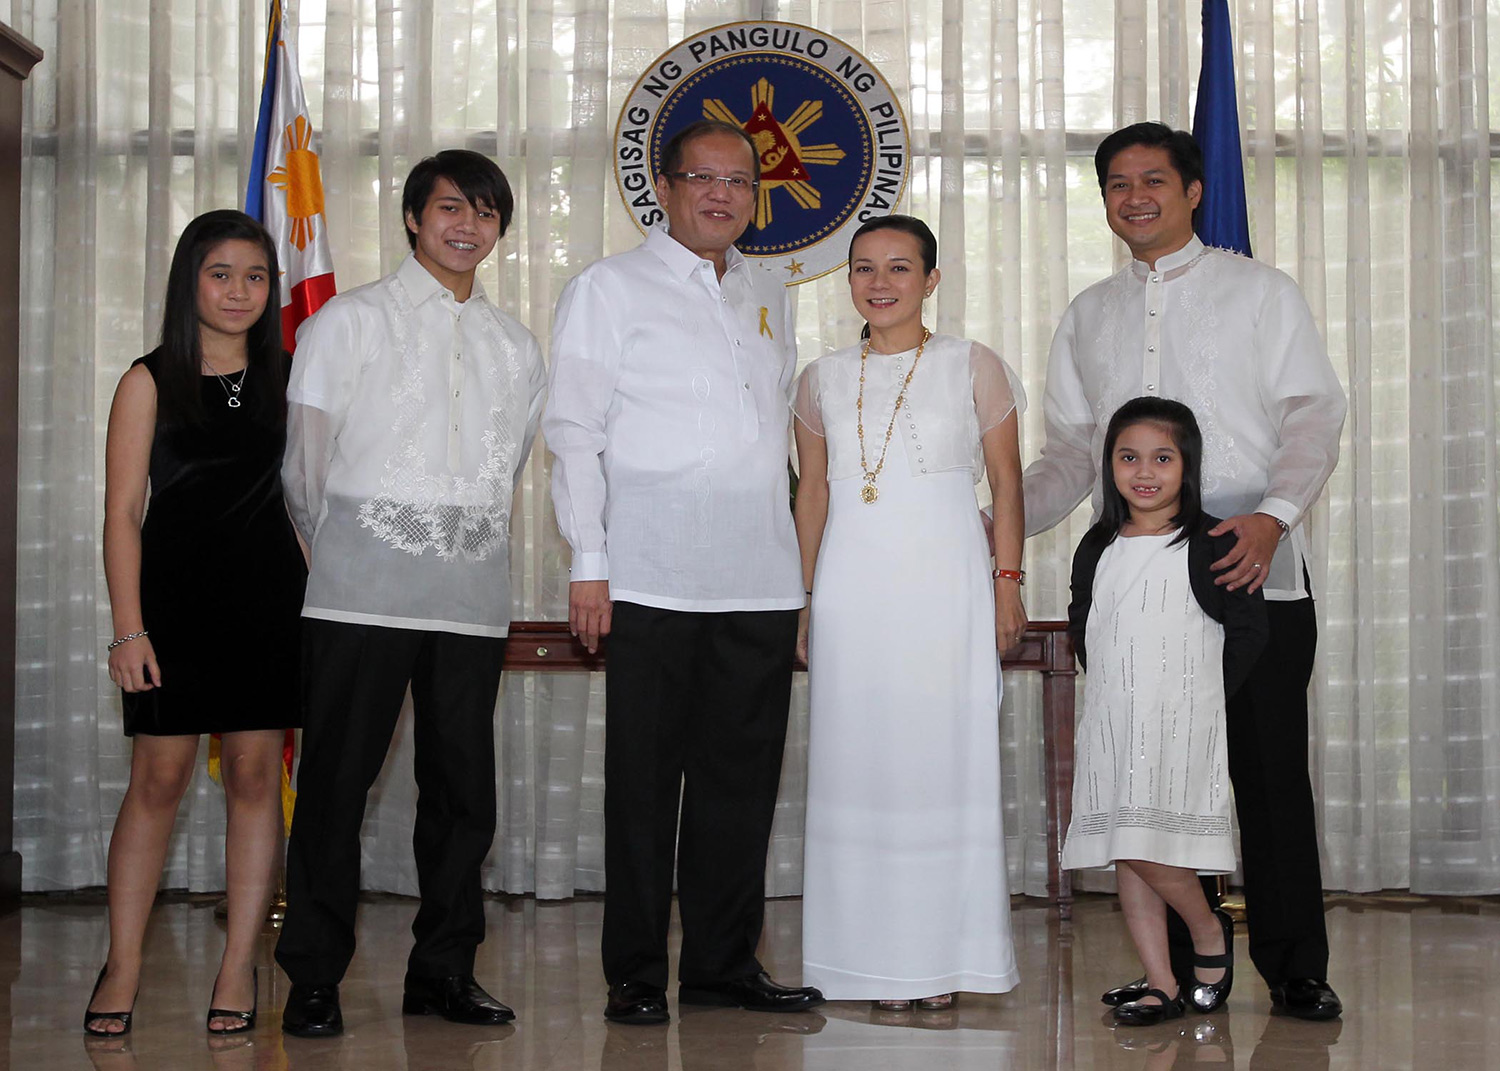 Grace Poe and her family, with President Benigno Aquino III in 2010 (Source: wikipedia.org)